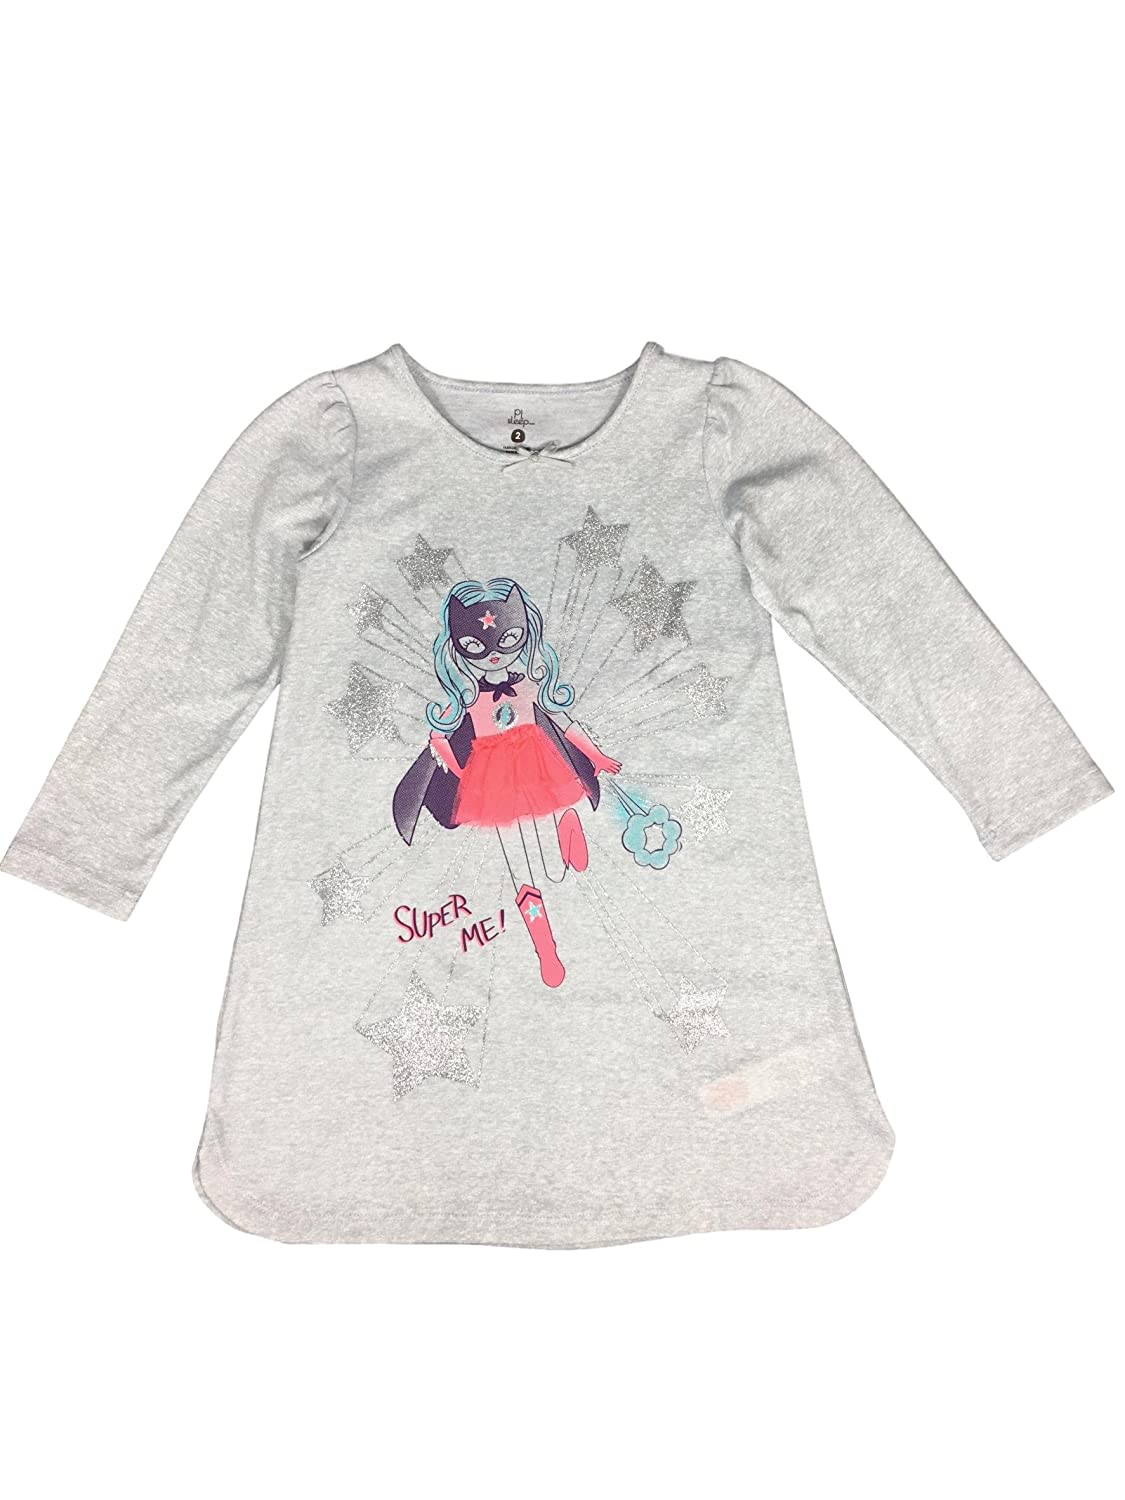 Lightweight Materials Cute and Cozy Pajamas Little Girl Nightgown Perfect Year Round.